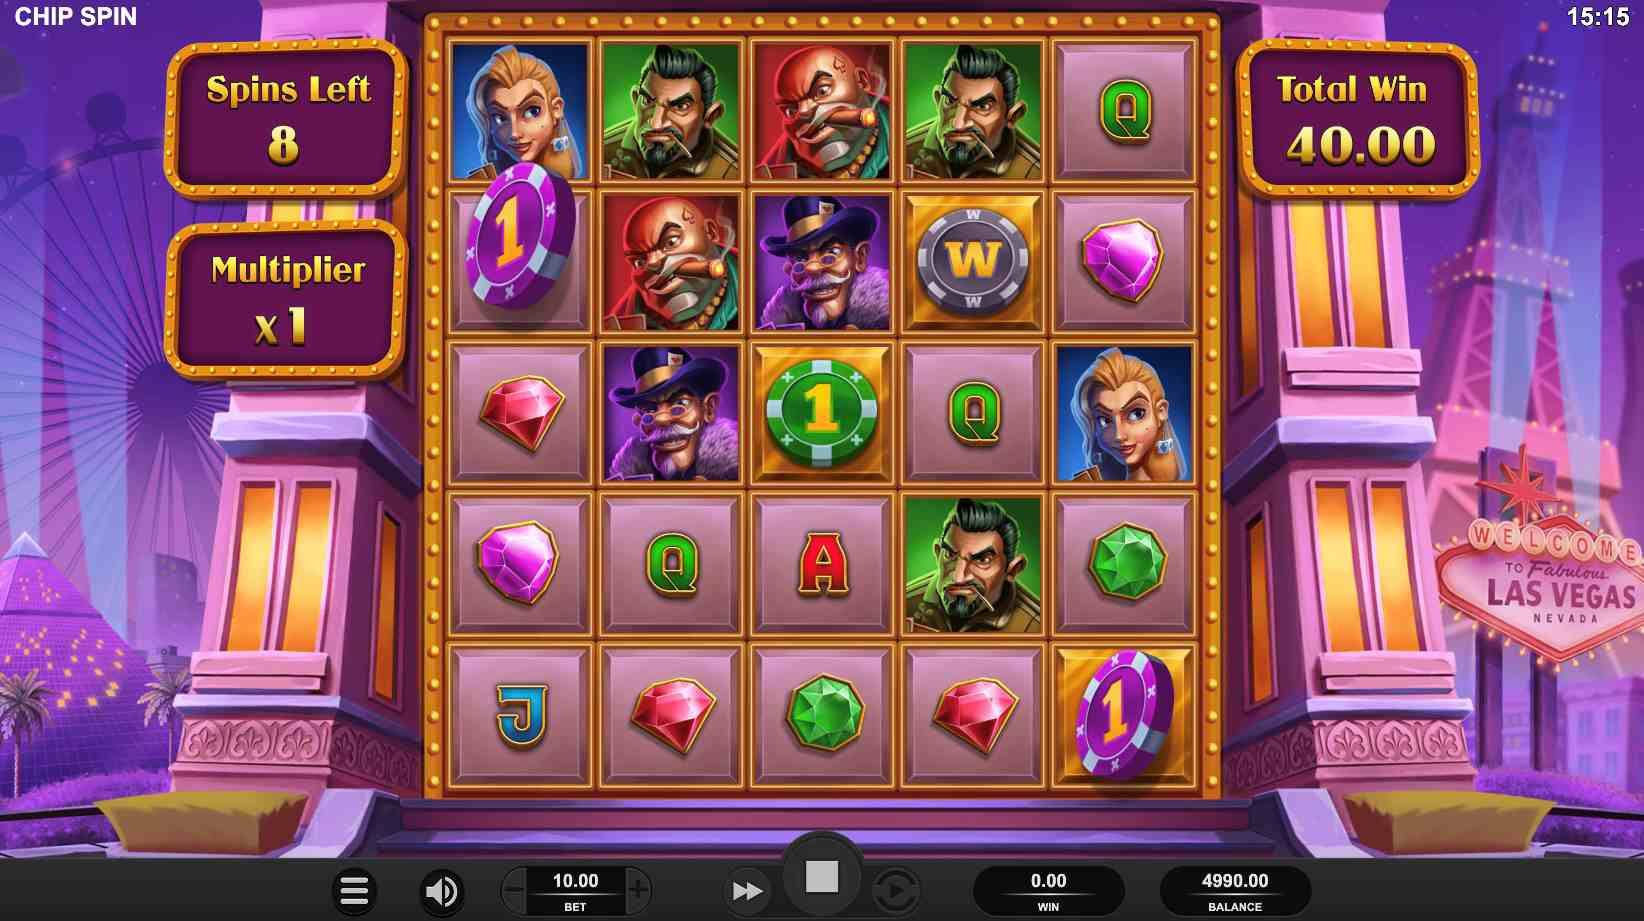 Chip Spin Free Spins